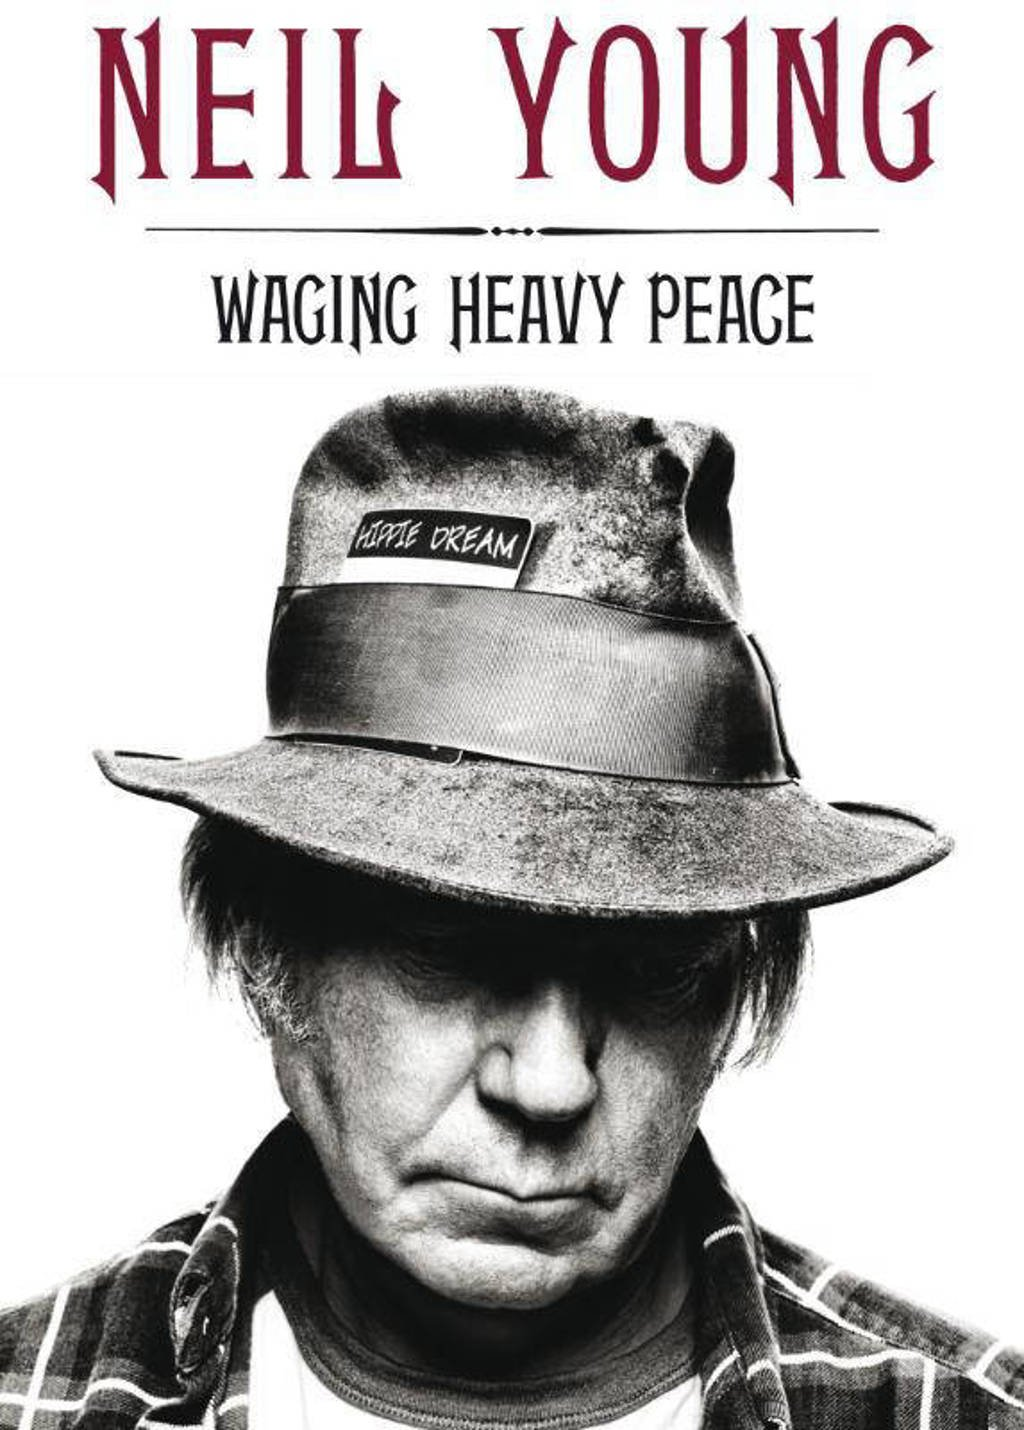 Waging heavy peace - Neil Young